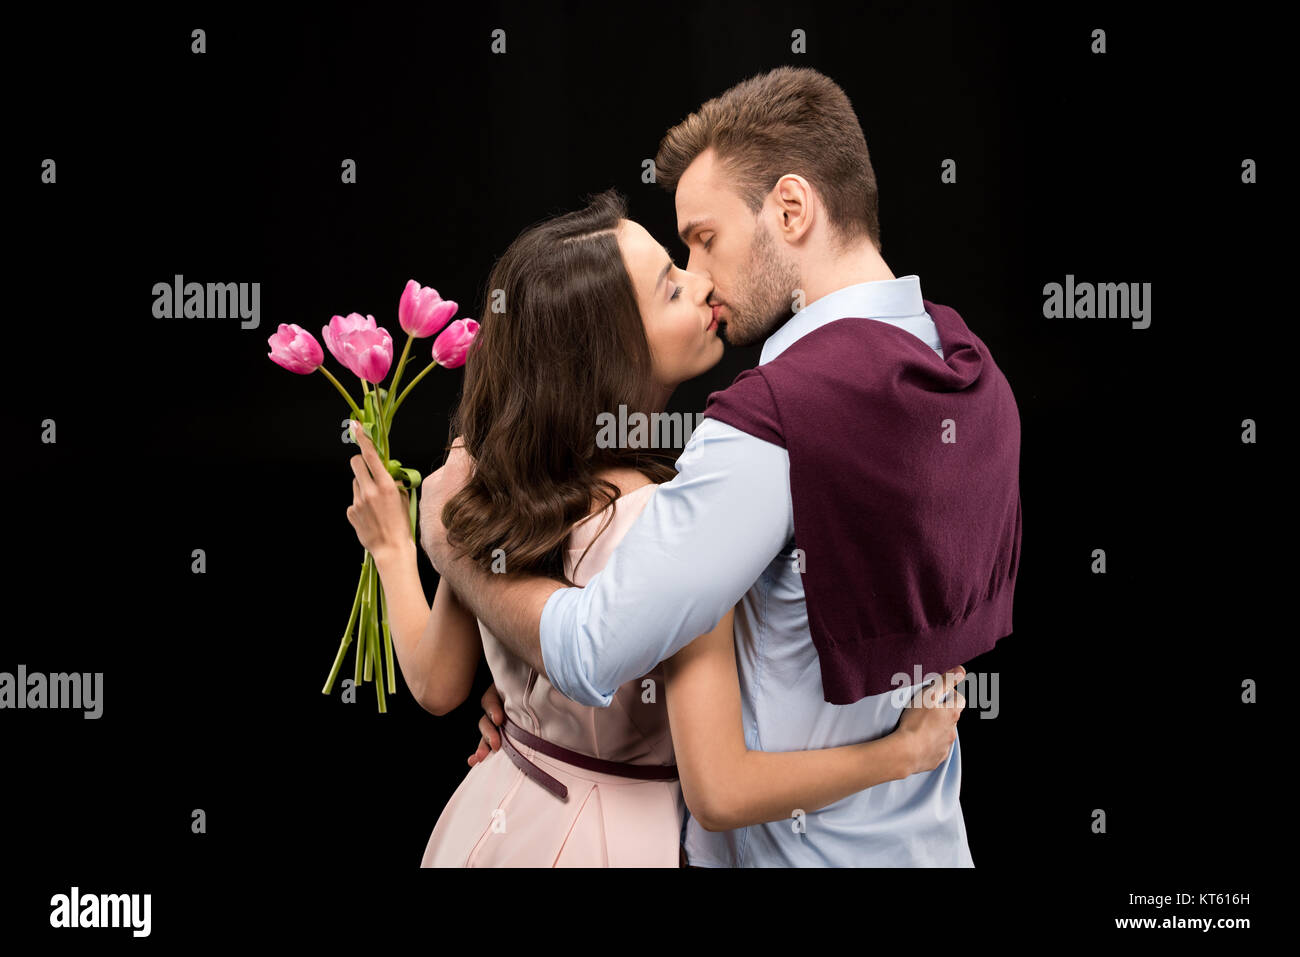 back view of man kissing woman with tulips bouquet on black, international womens day concept - Stock Image